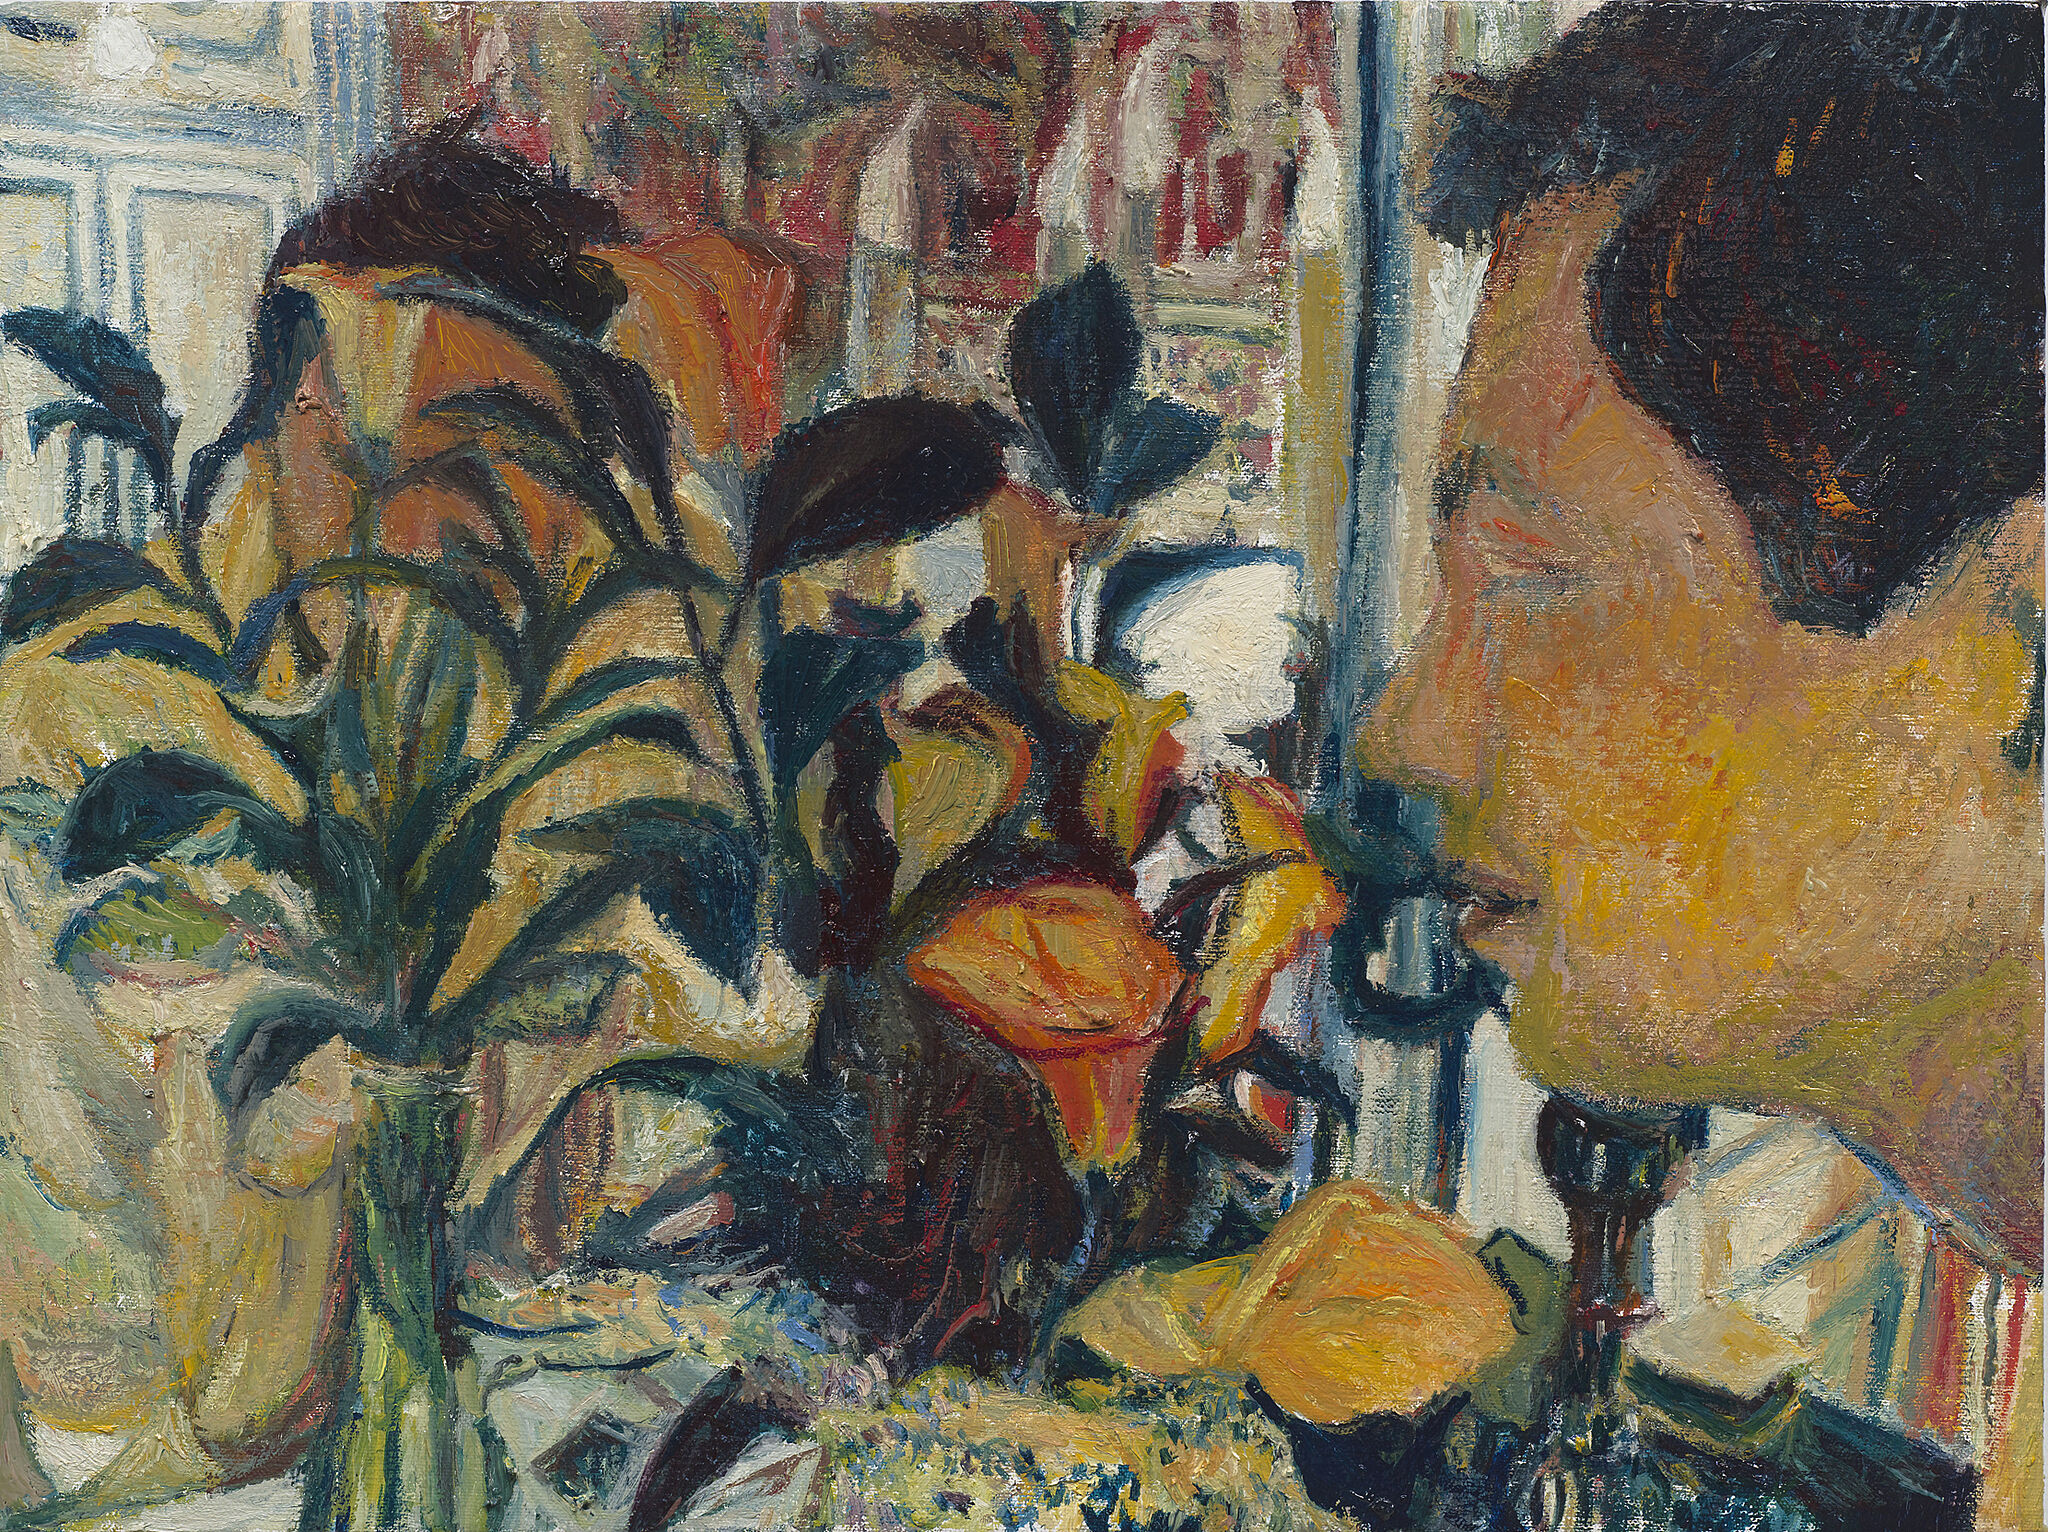 A painting of a man smelling flowers.